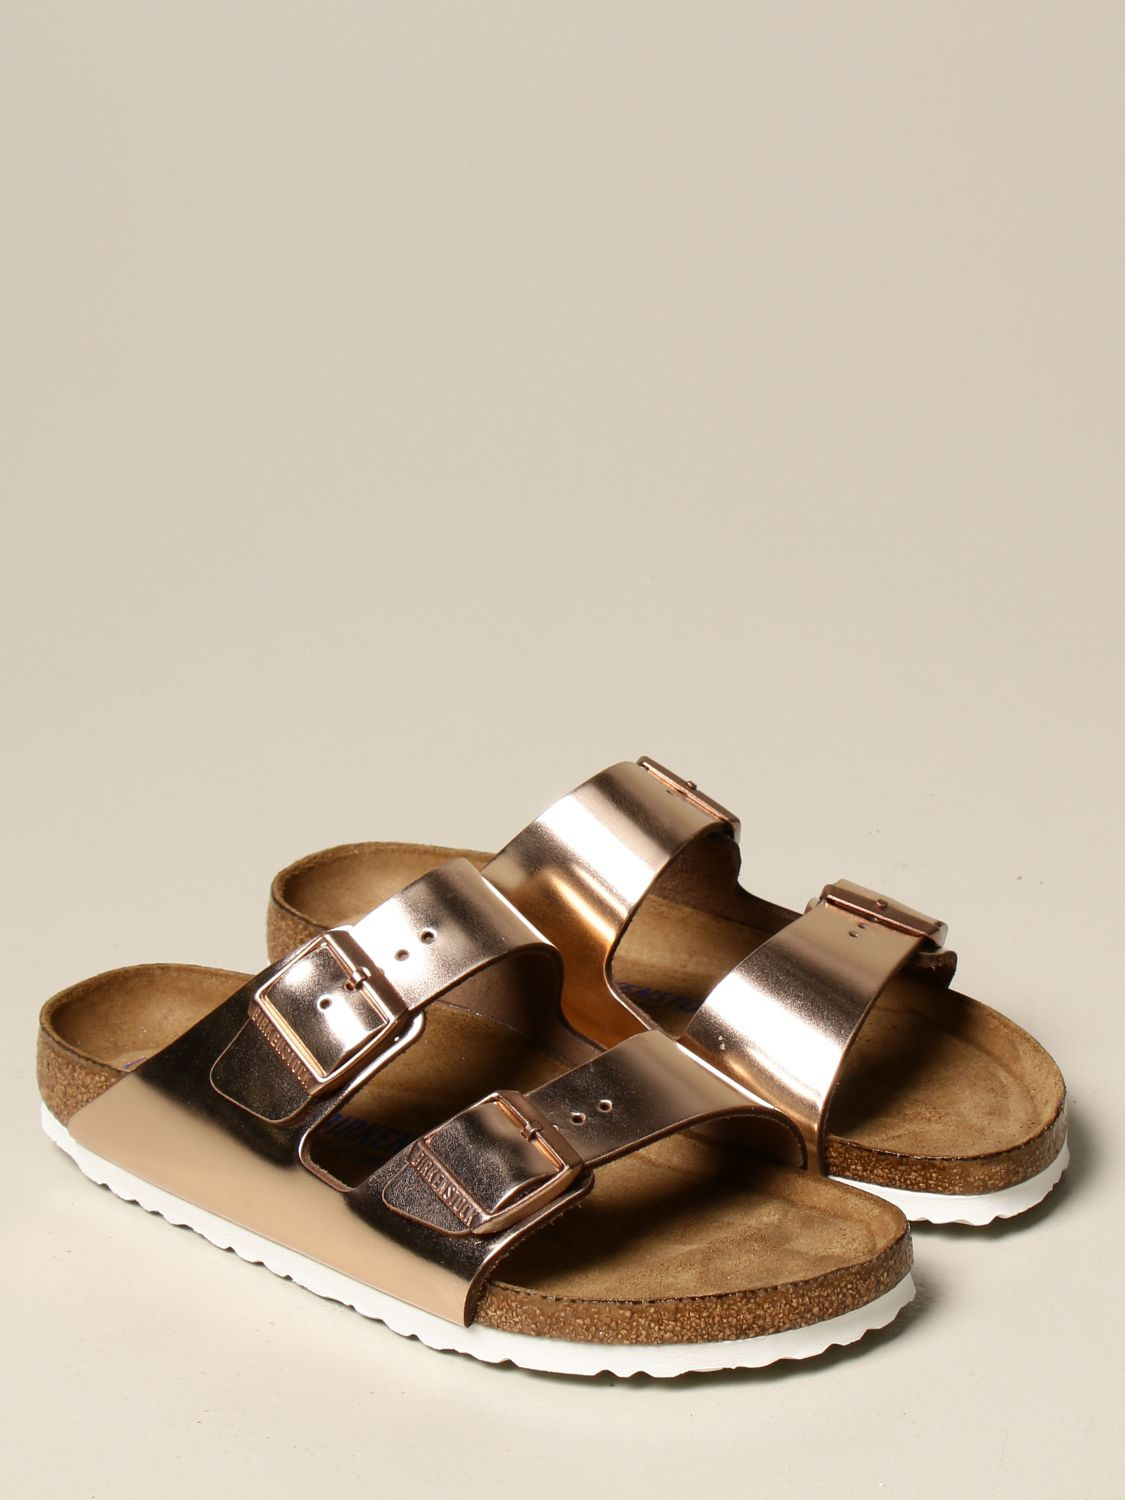 Sandals Birkenstock: Shoes men Birkenstock pink 2